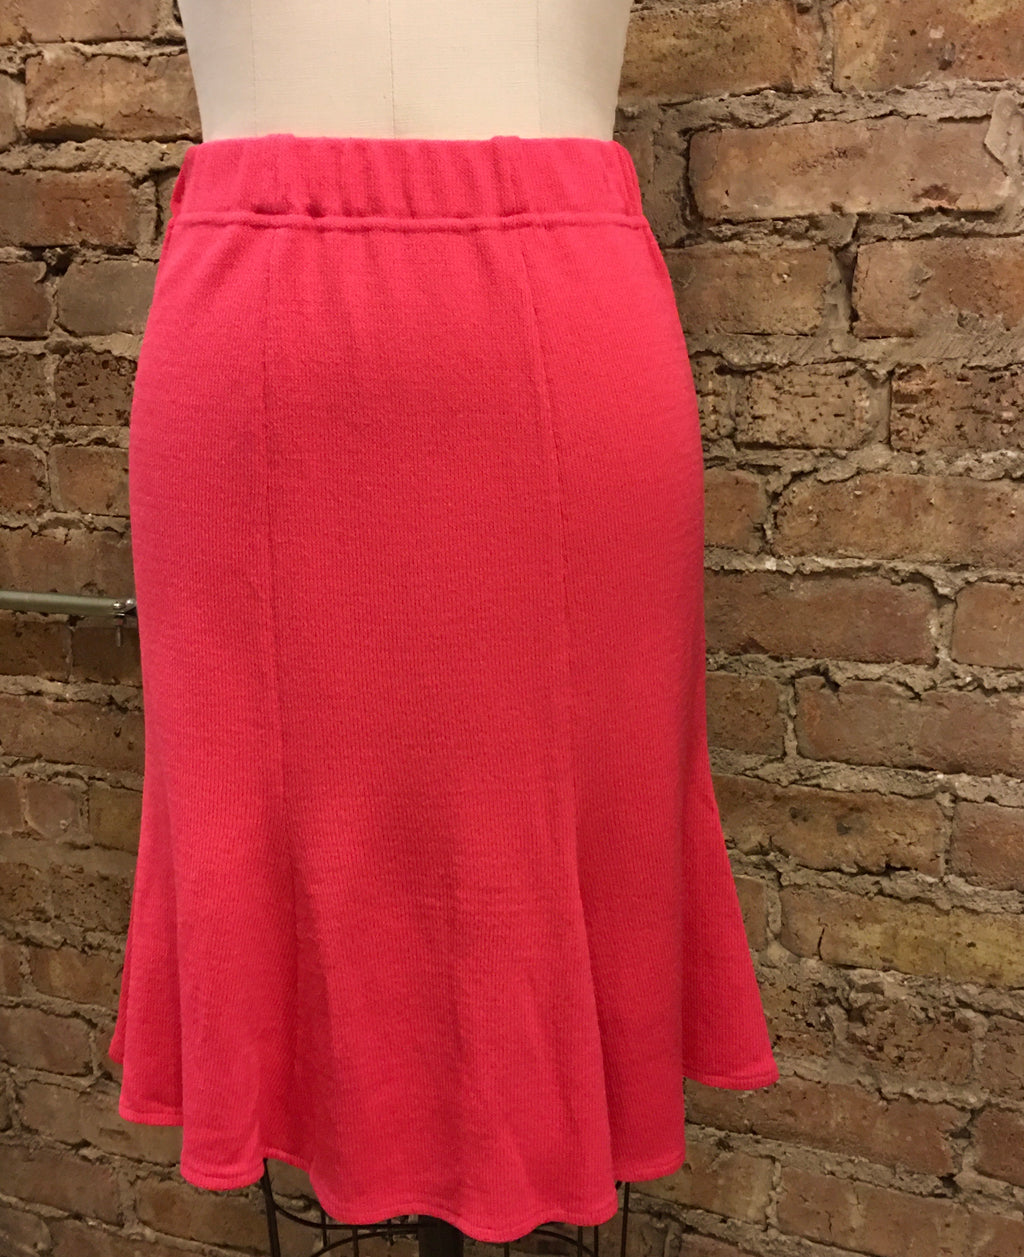 Vintage St John by Marie Gray elastic knit skirt